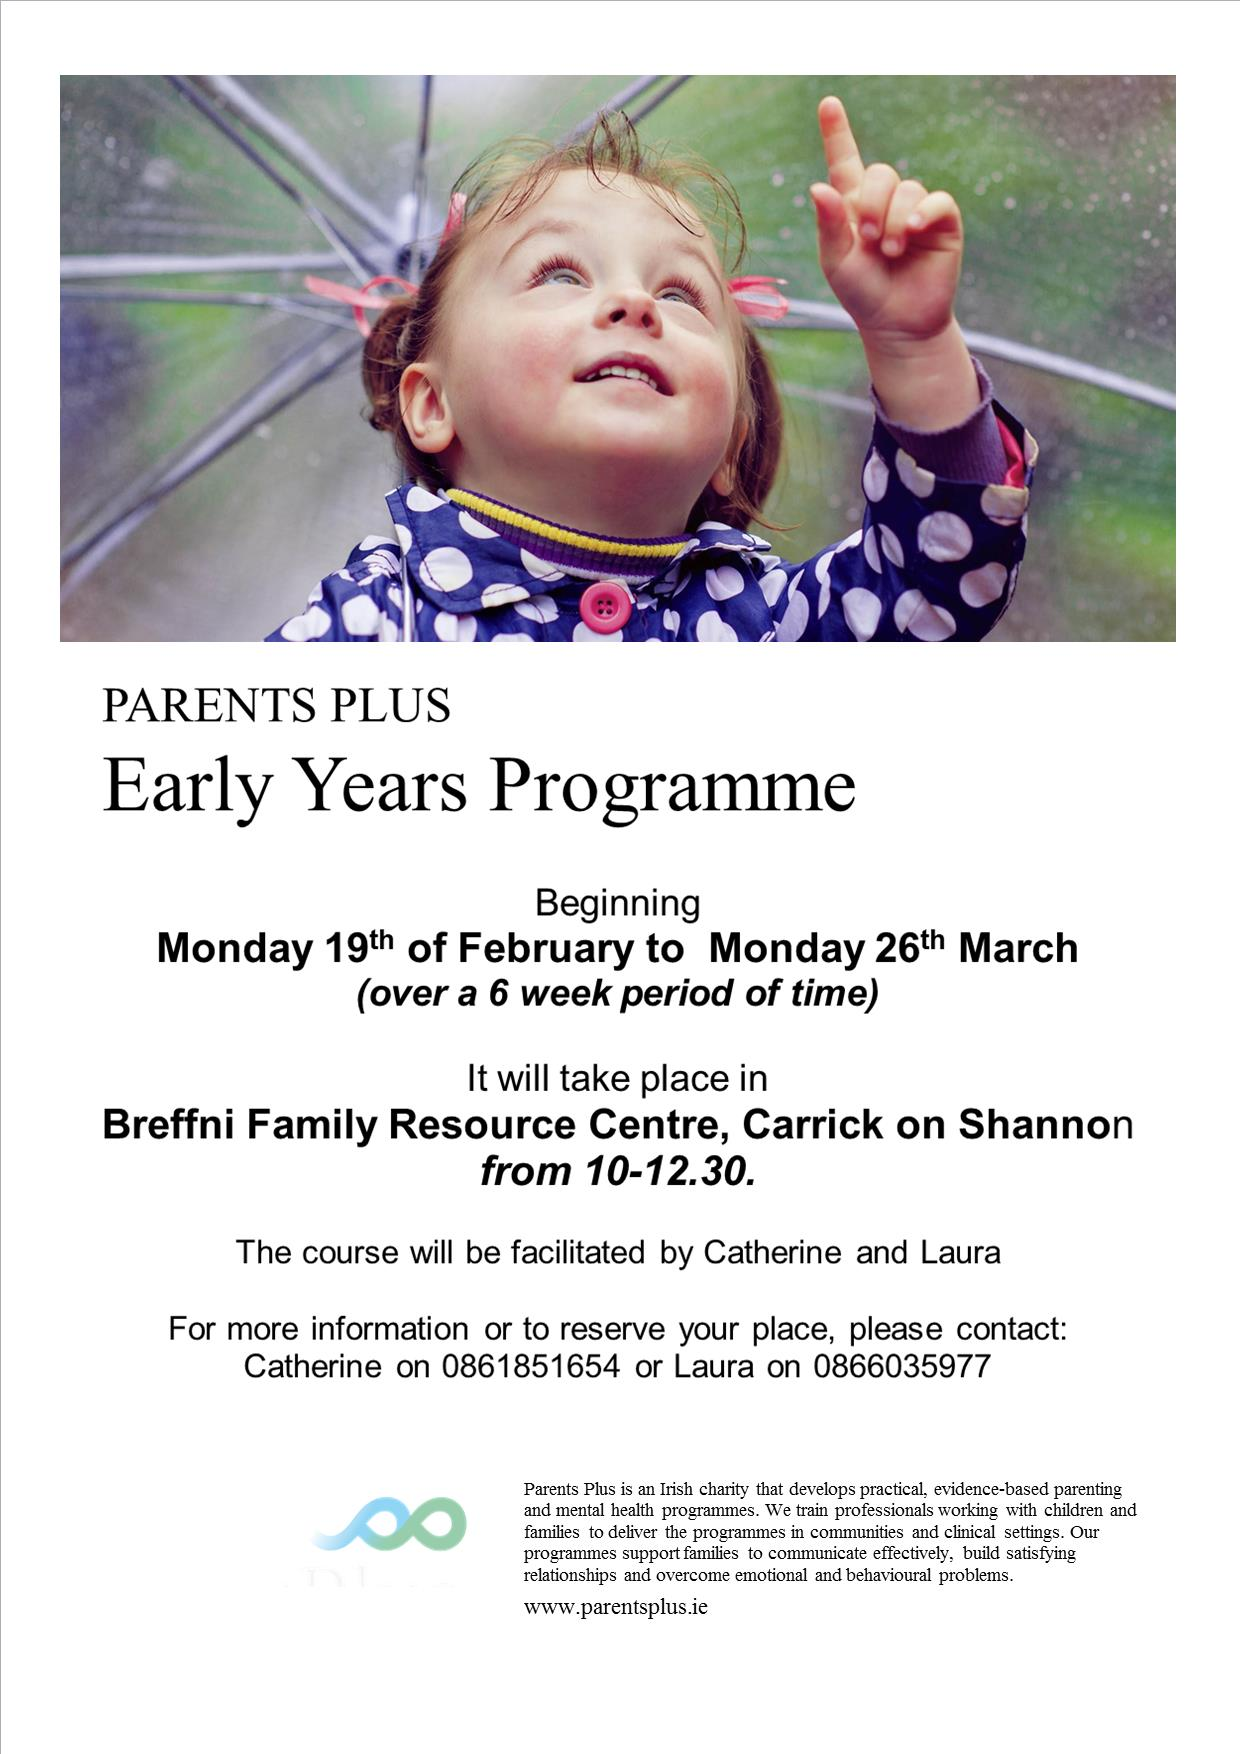 MyCarrick Event - Breffni Family Resource Centre - Parents Plus Early Years Programme